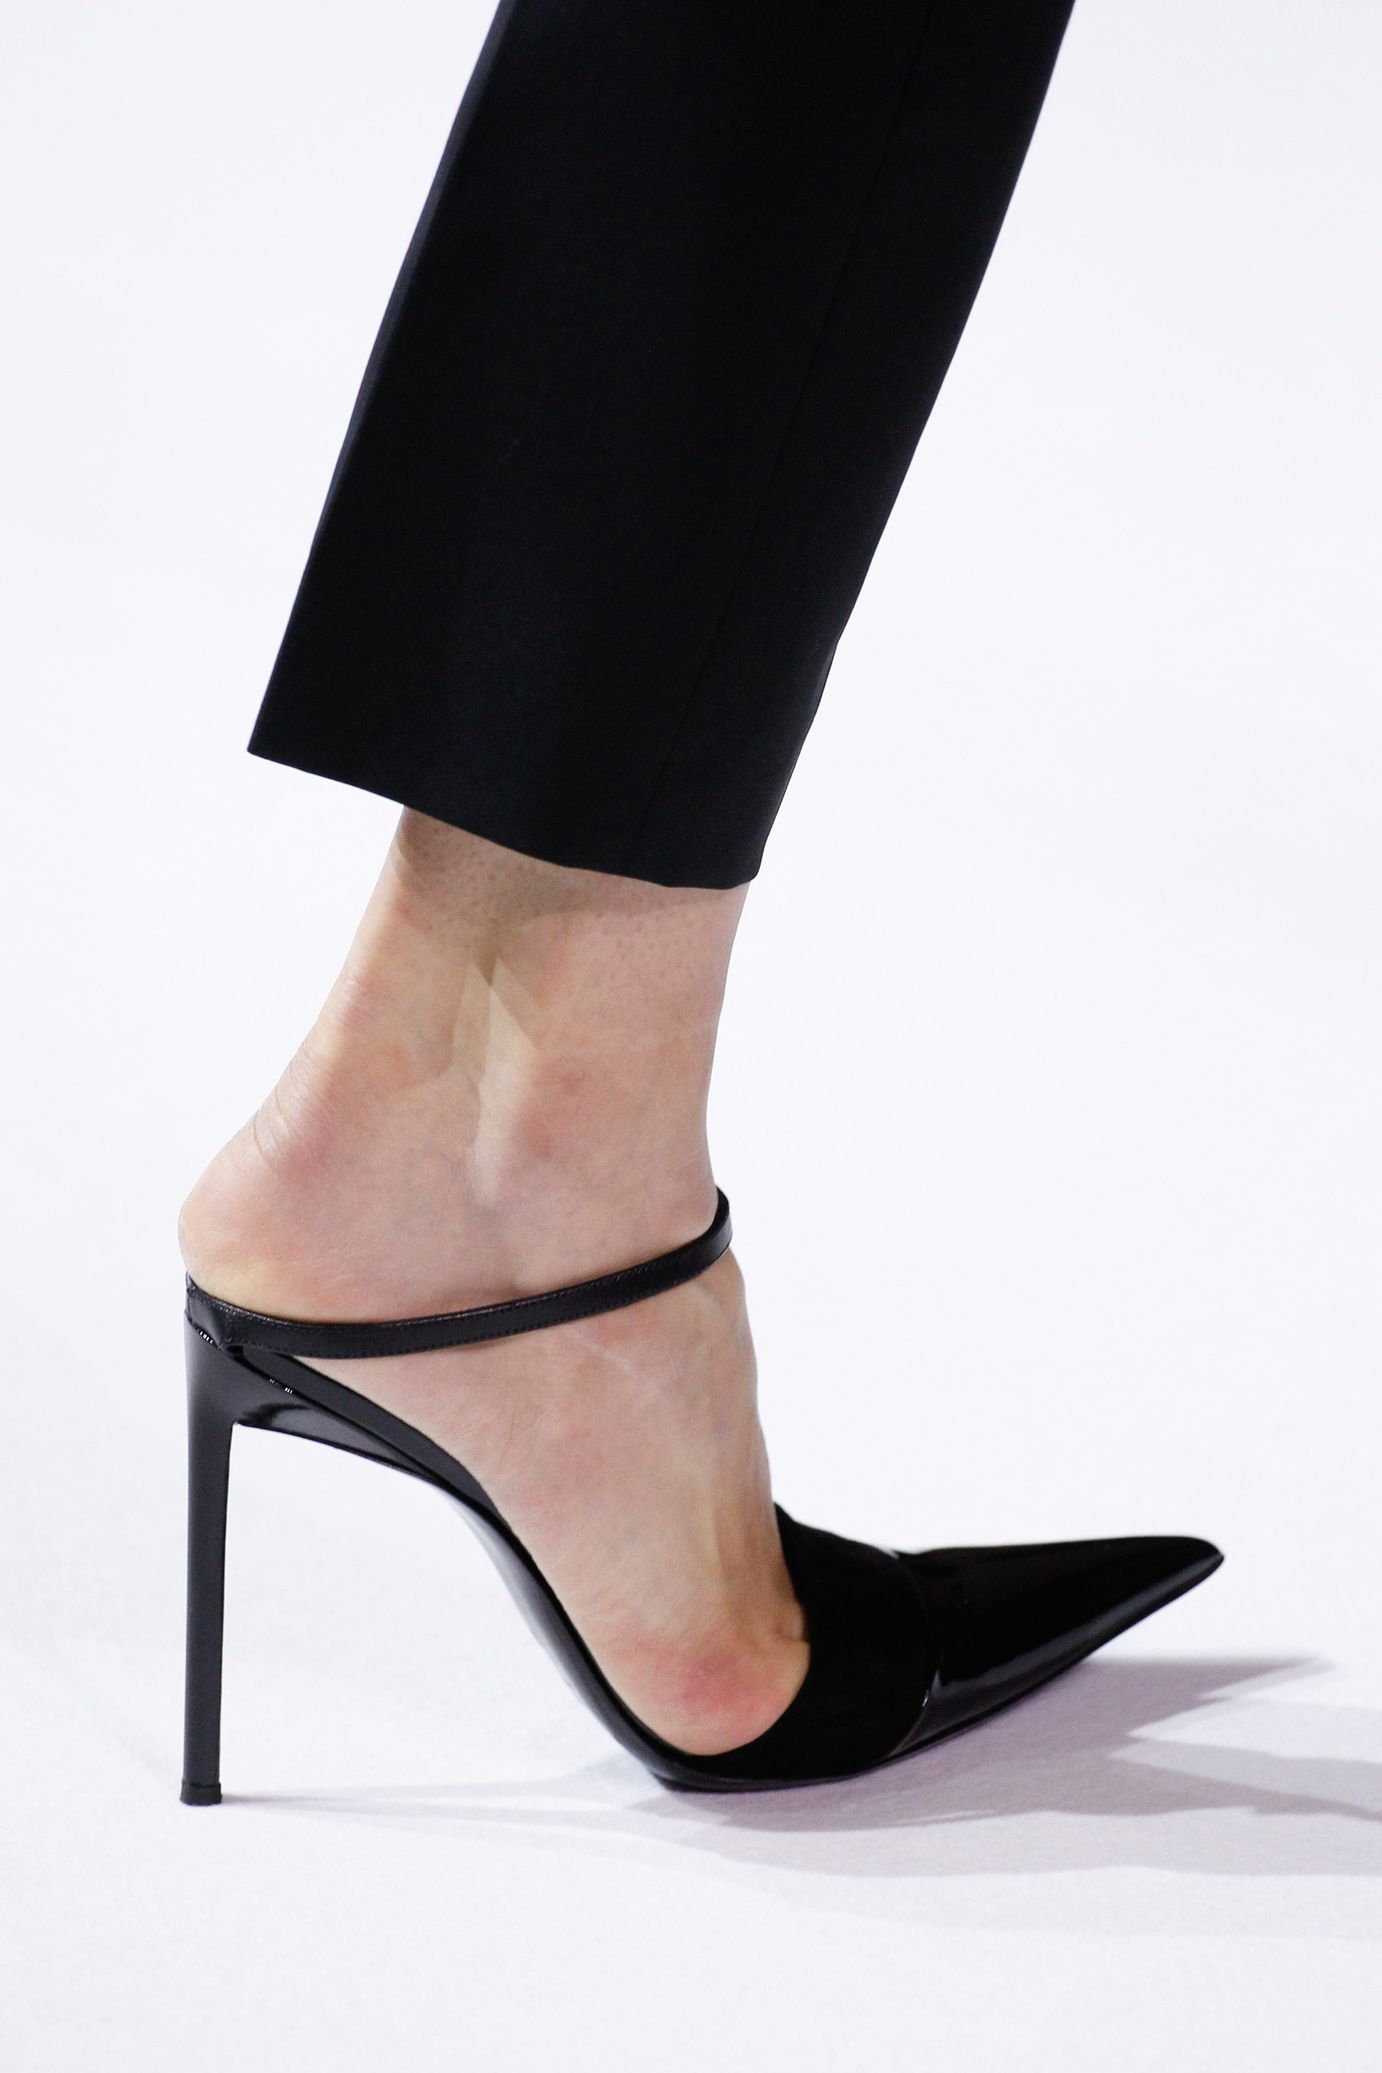 FOOTWEAR - Sandals Haider Ackermann Free Shipping Geniue Stockist Clearance Collections Free Shipping For Nice Clearance Amazing Price Discount With Paypal hEpBQ3